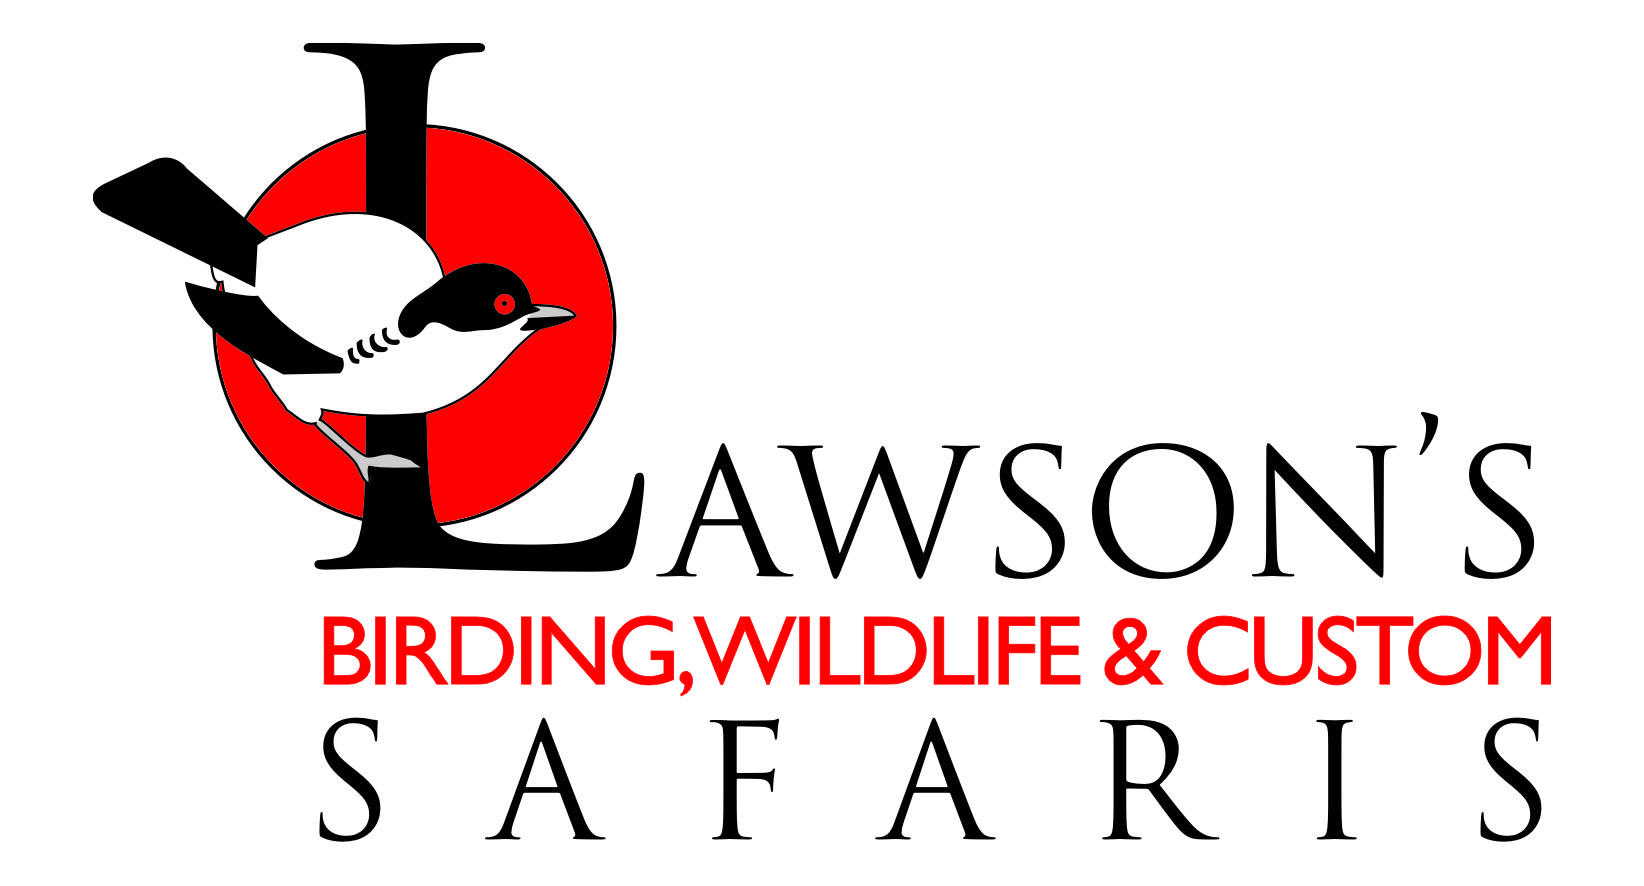 Lawson's Birding, Wildlife & Custom Safaris